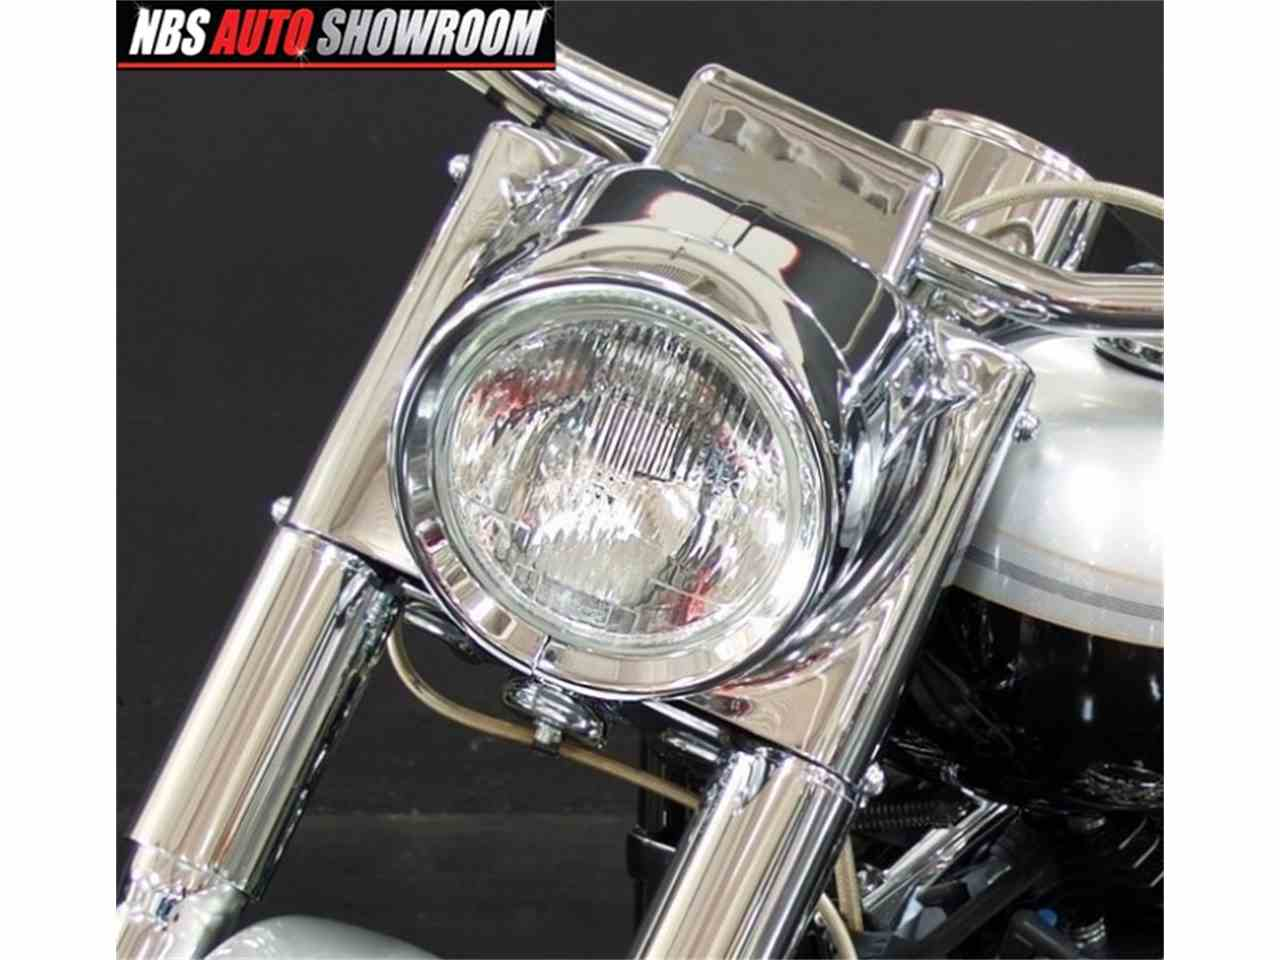 Large Picture of 2003 Harley Davidson SCREAMING EAGLE located in Milpitas California - $8,003.00 Offered by NBS Auto Showroom - IVXN